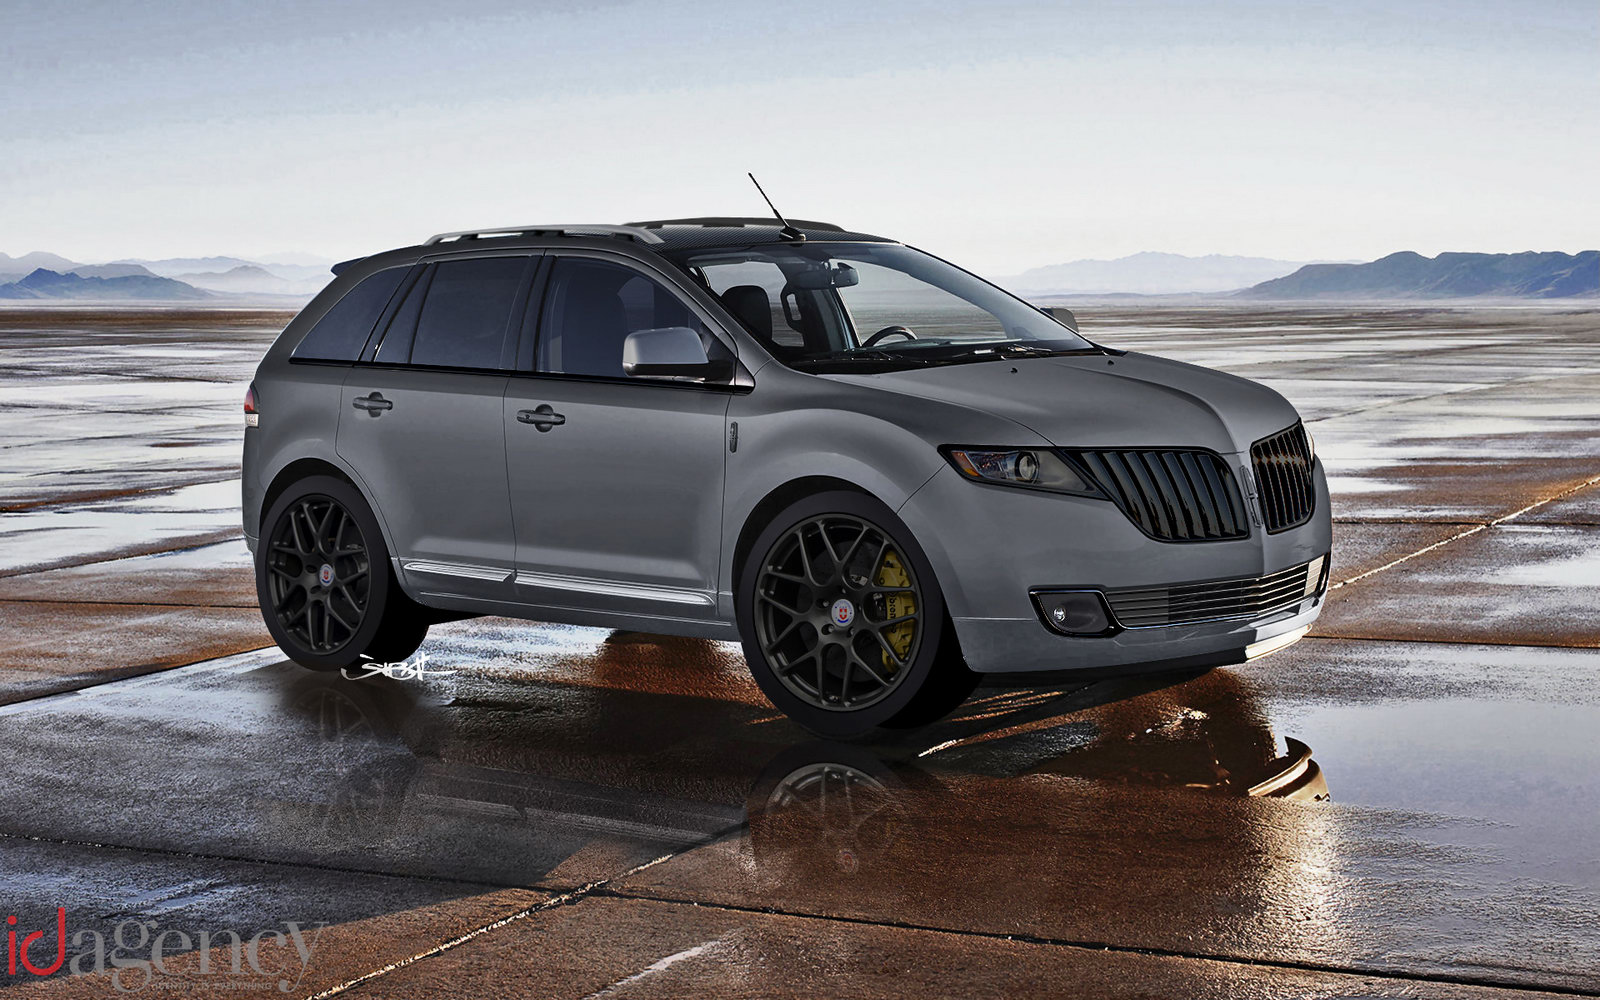 2011 Customized Ford Explorer Edge Taurus Fusions